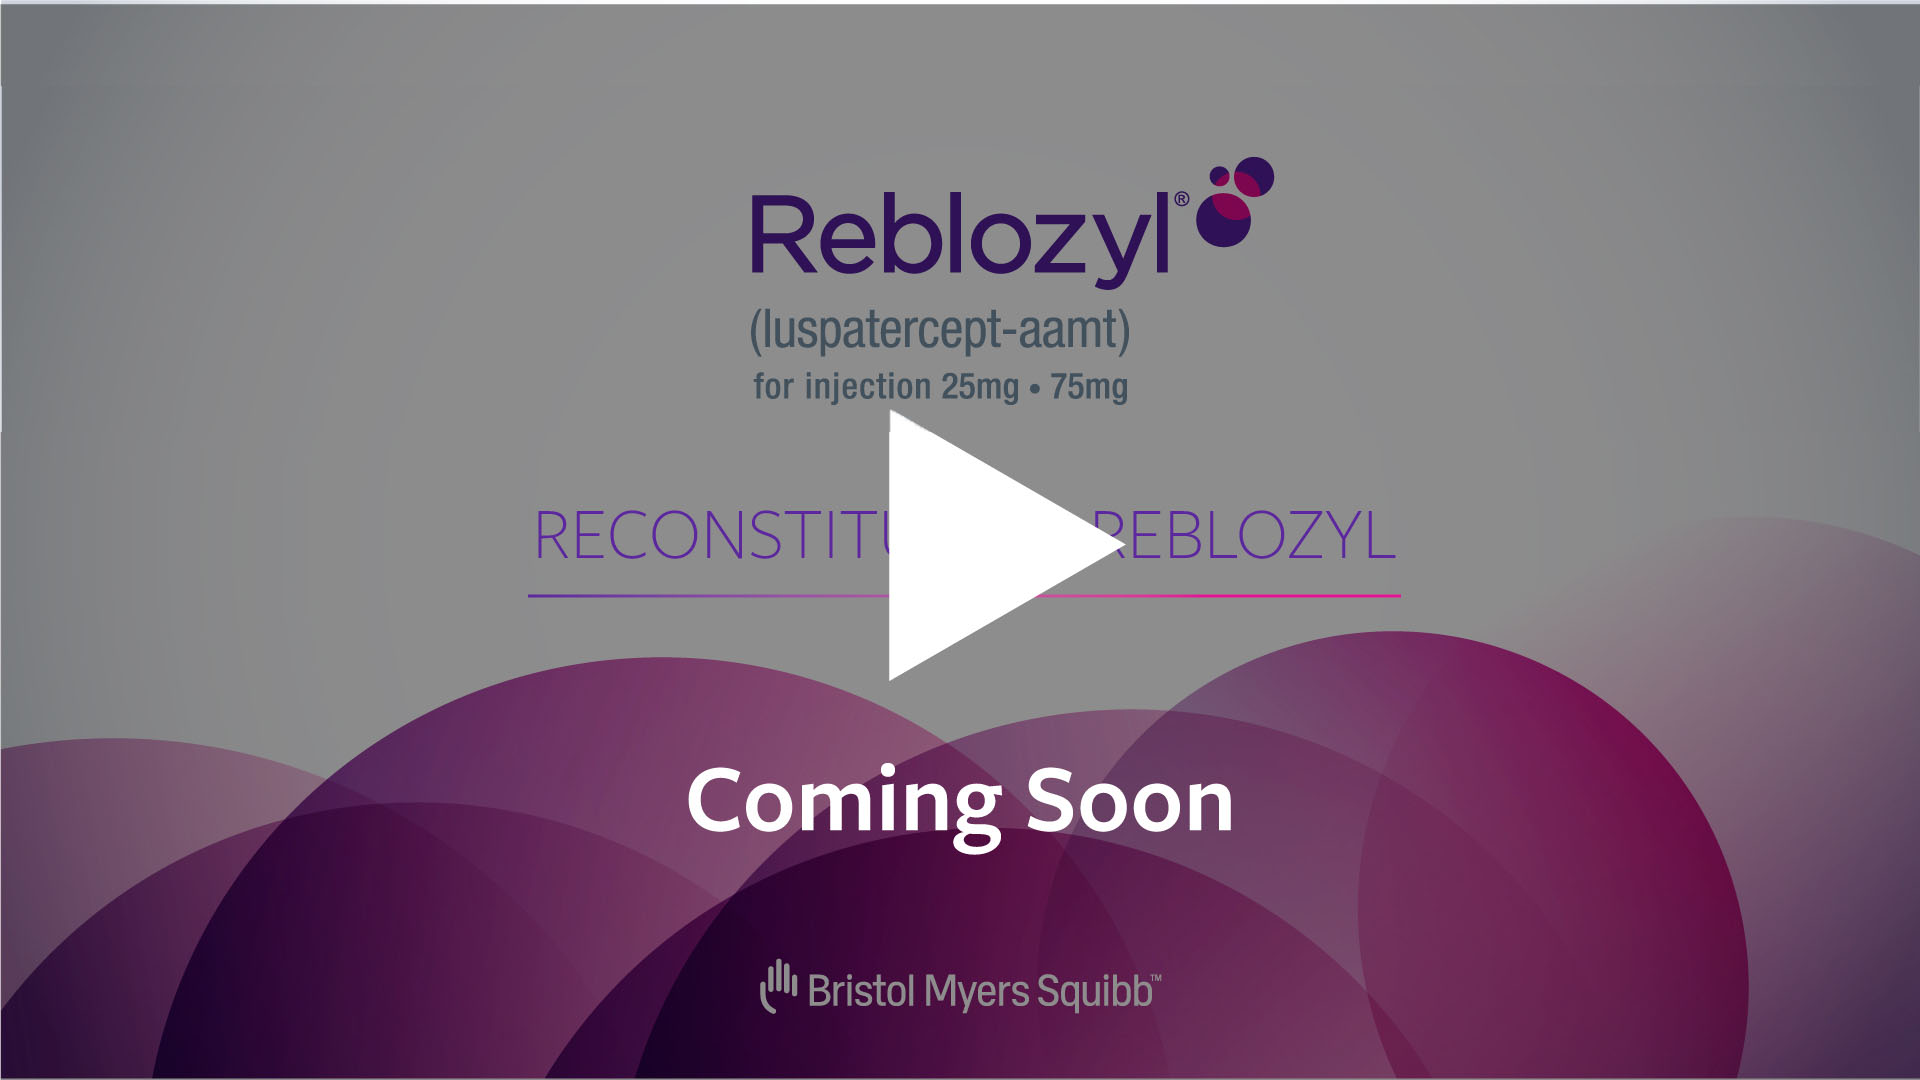 REBLOZYL® Reconstitution.